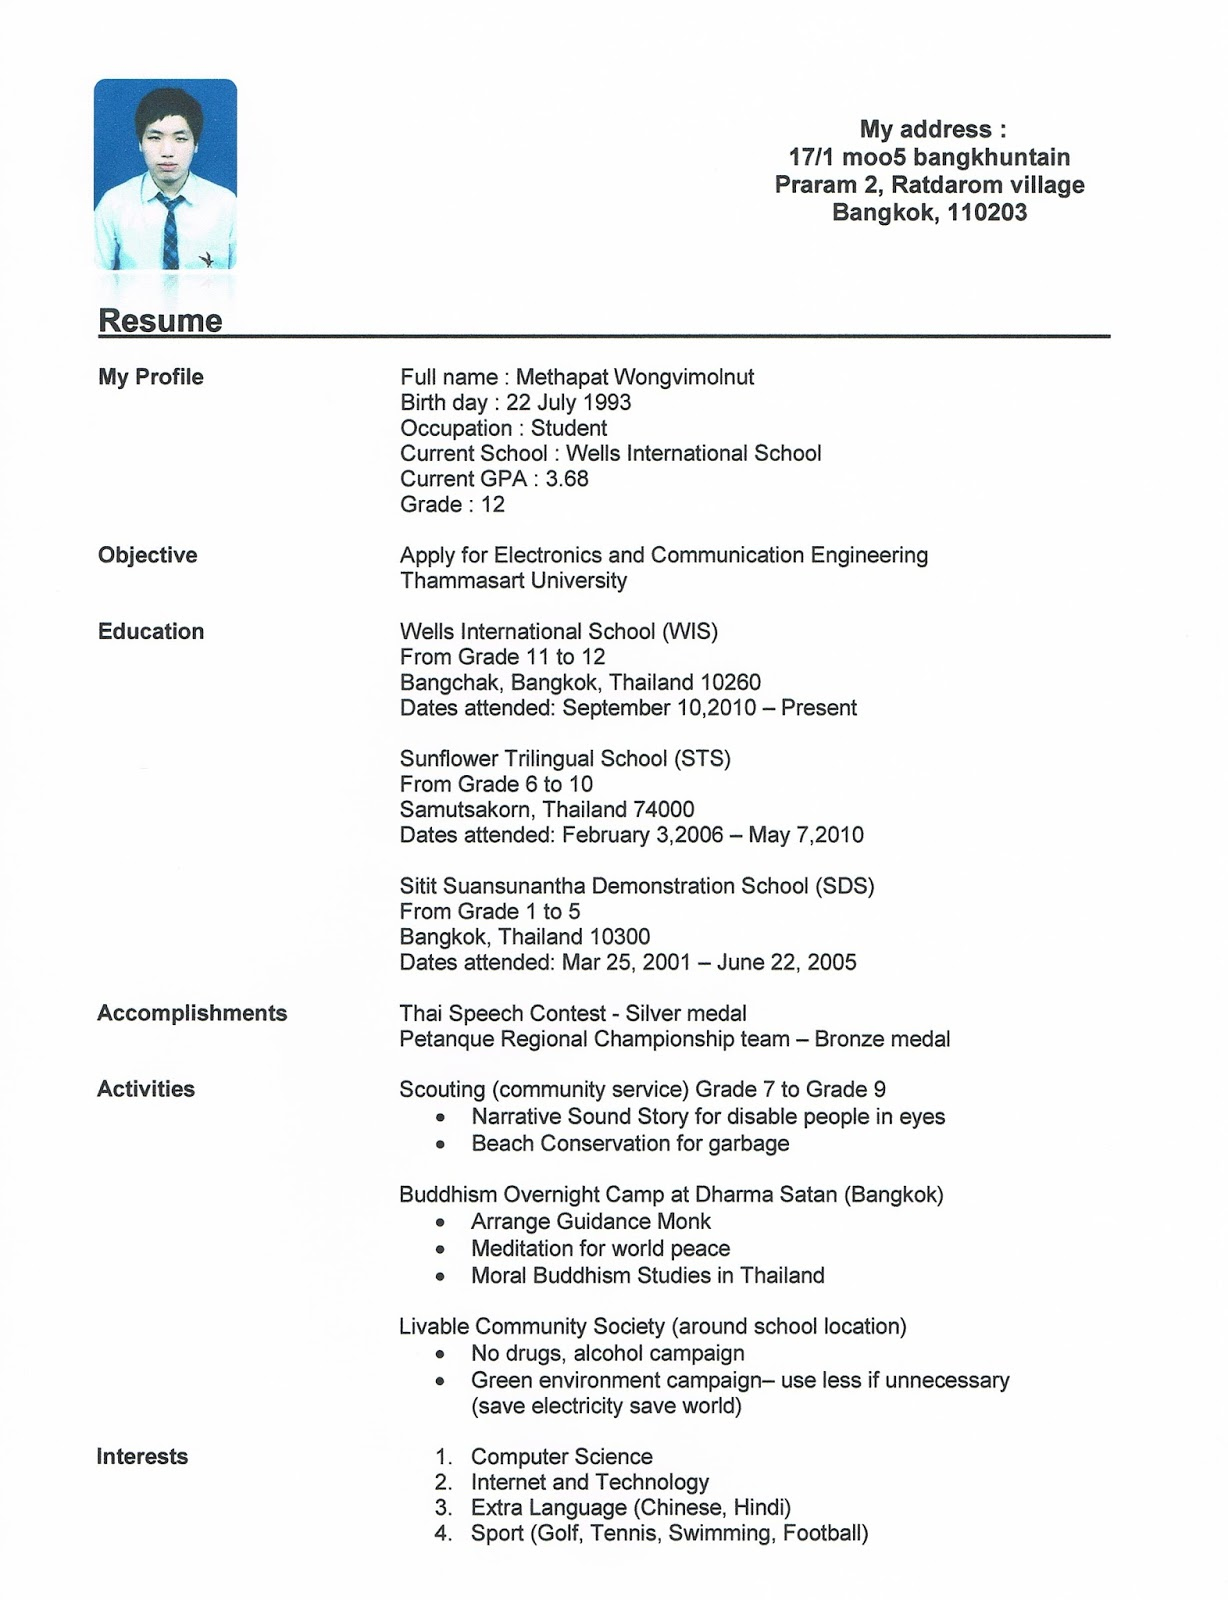 Website and resume and post